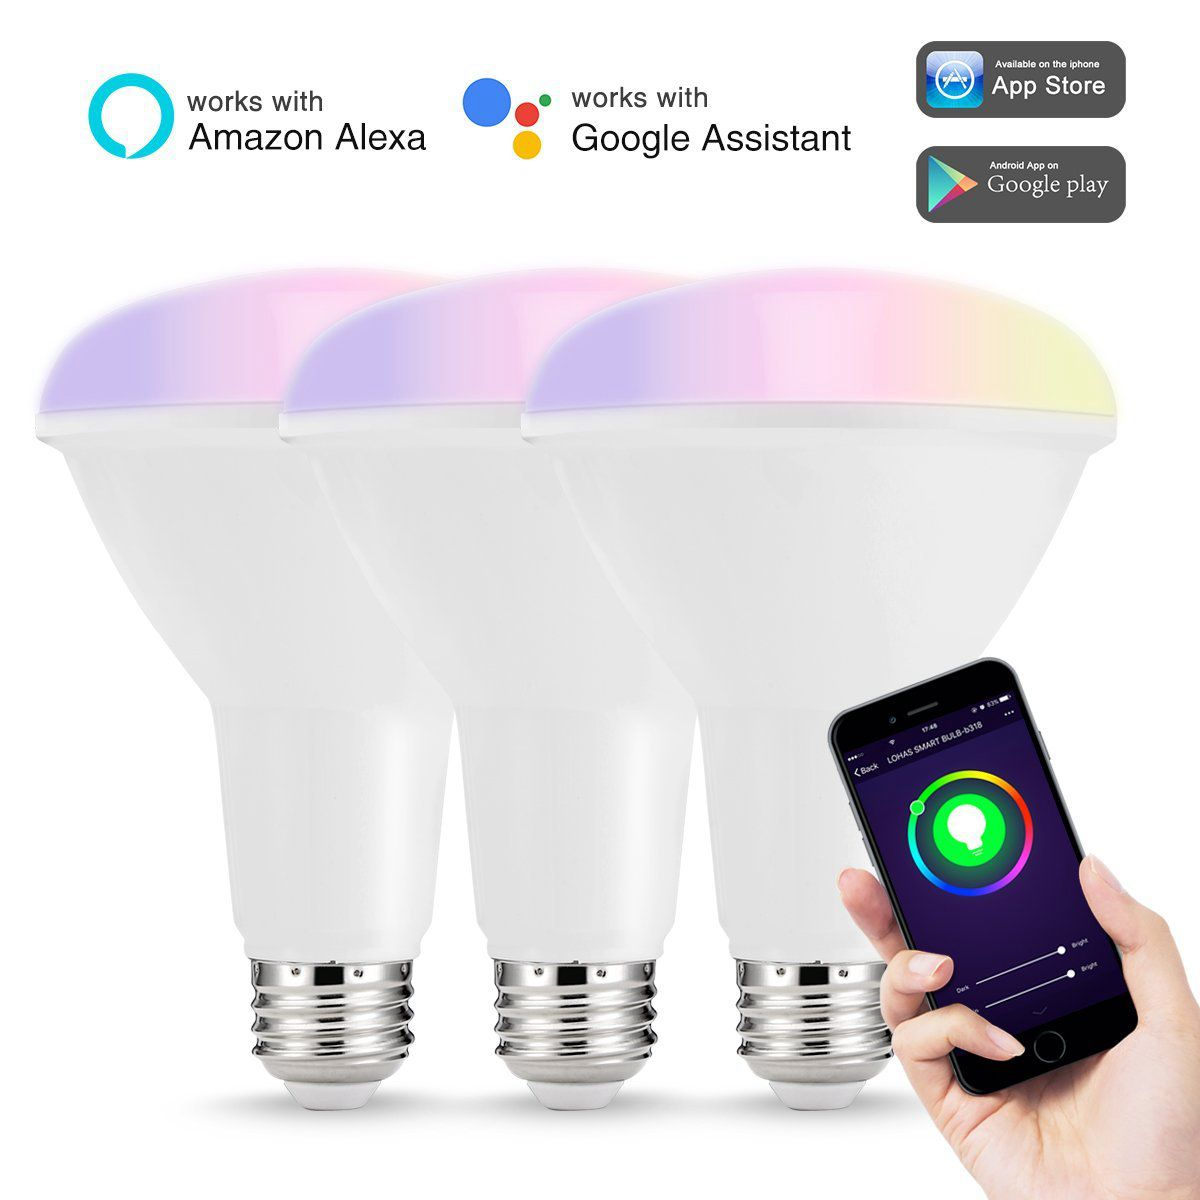 Smart LED Bulbs Multicolored WIFI LED Lights BR30 Dimmable Recessed Light Bulbs 75W 80W Equivalent Flood Light APP Control